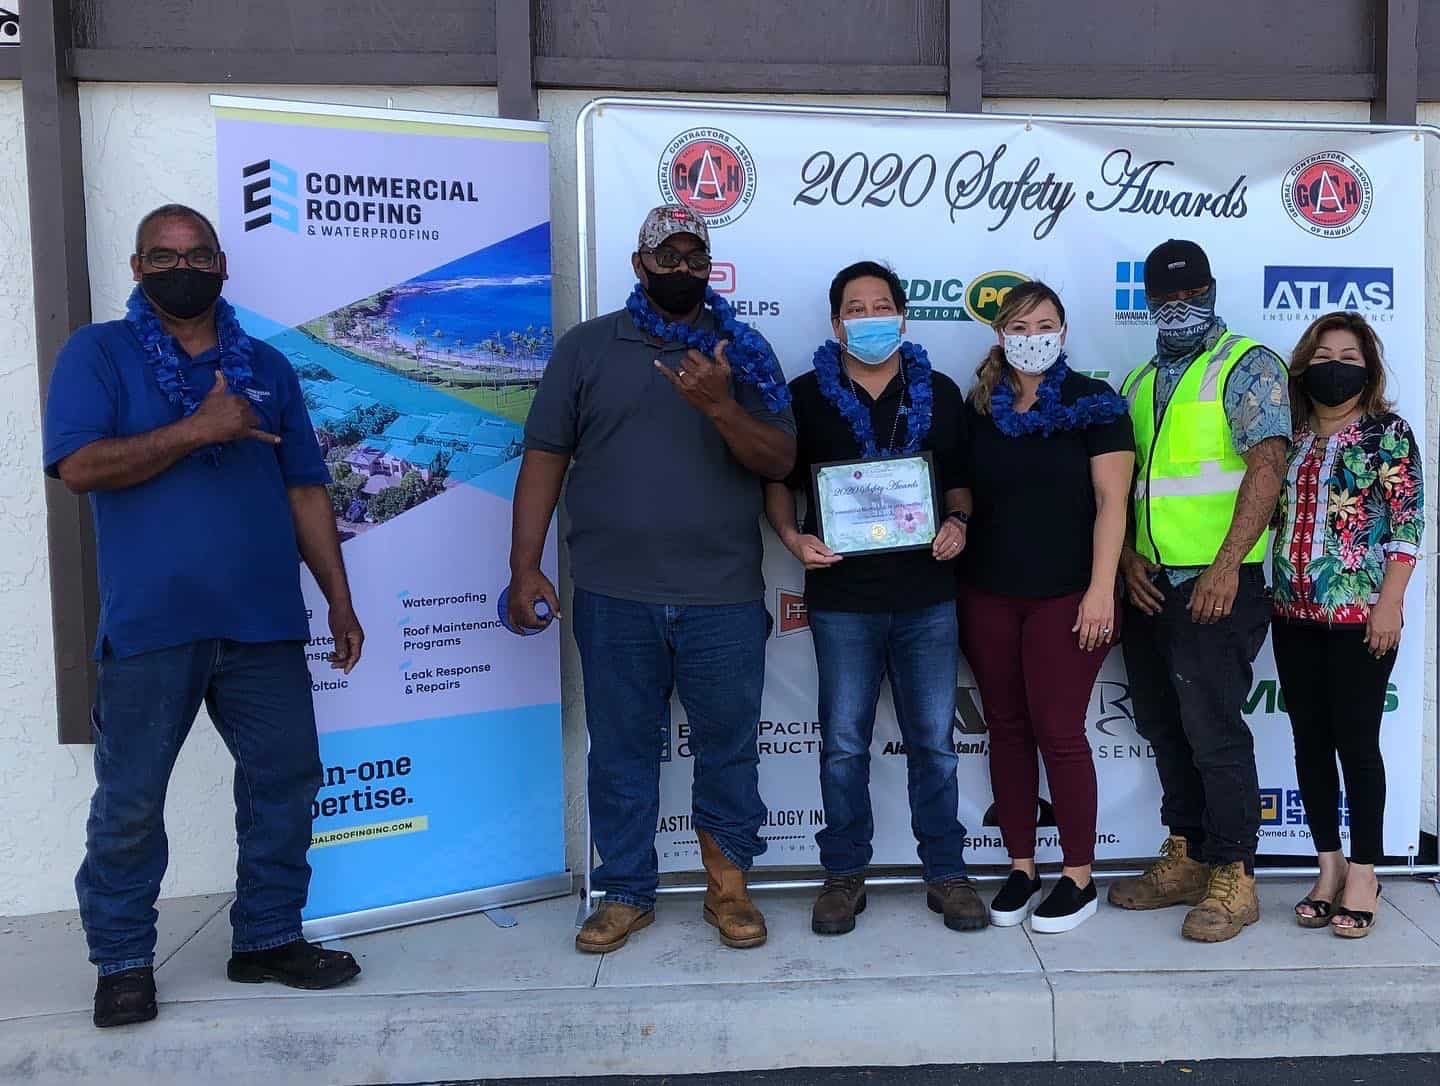 2020 GCA Hawaii Safety Awards